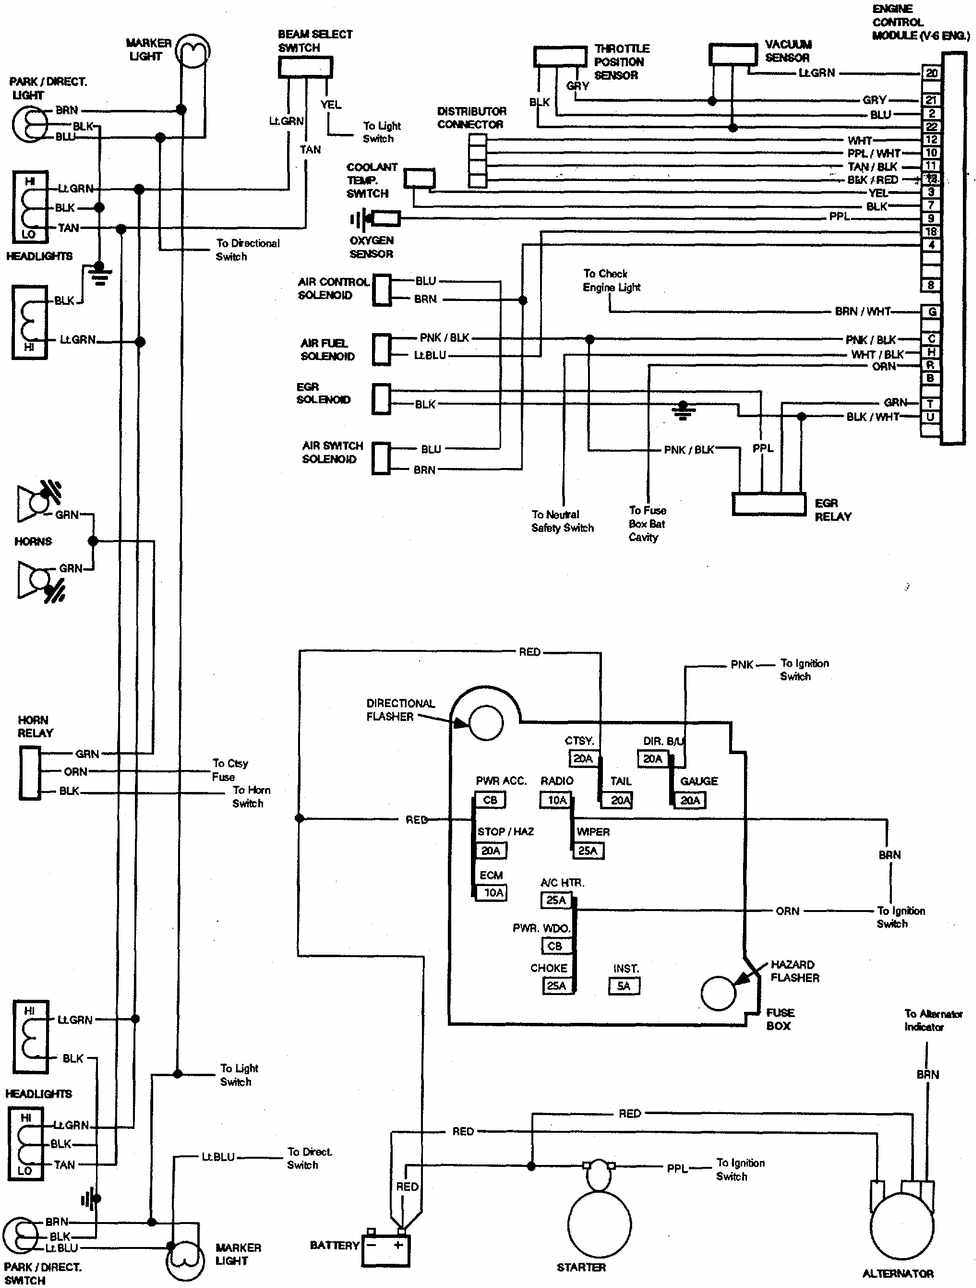 Wiring Diagram On Wiring Diagram For A 2001 F350 Cruise Control